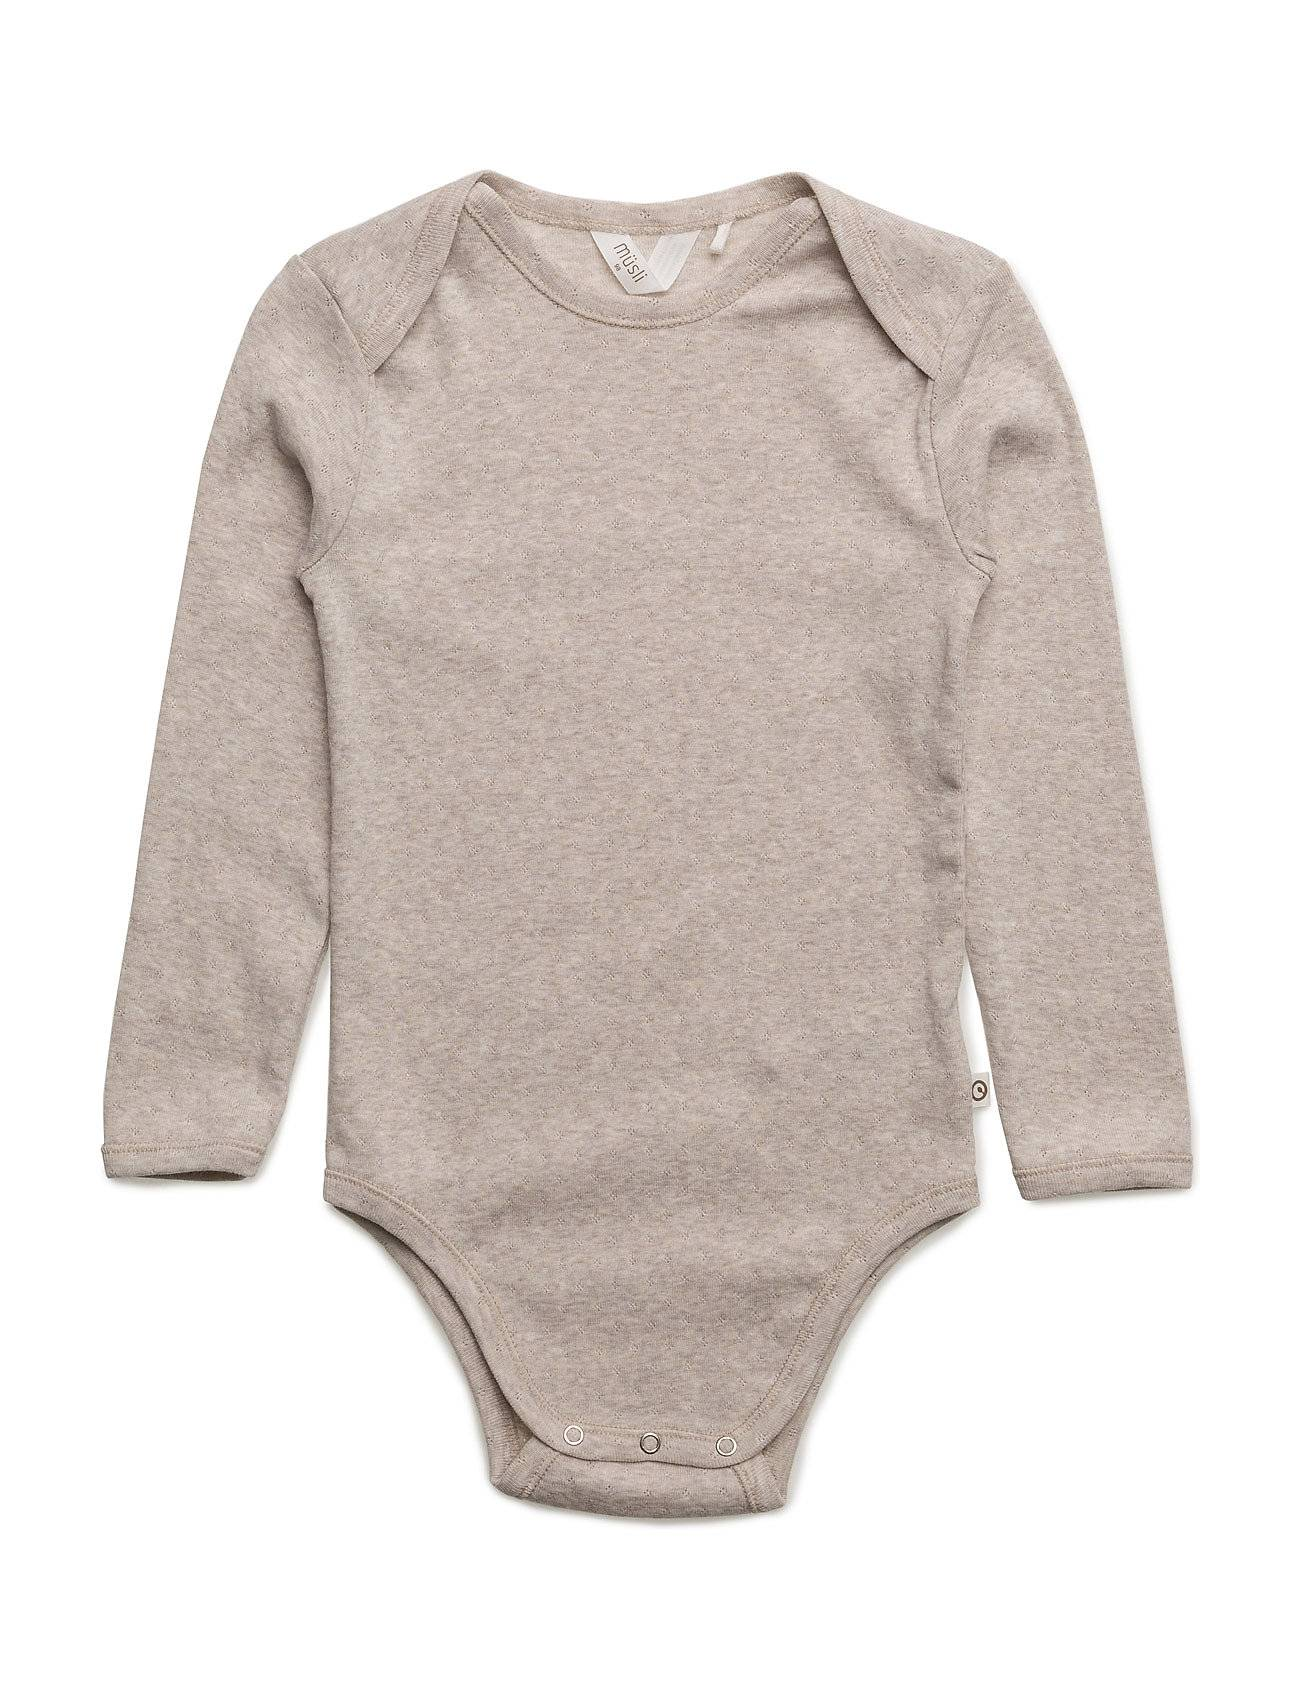 Müsli by Green Cotton Bedtime Body